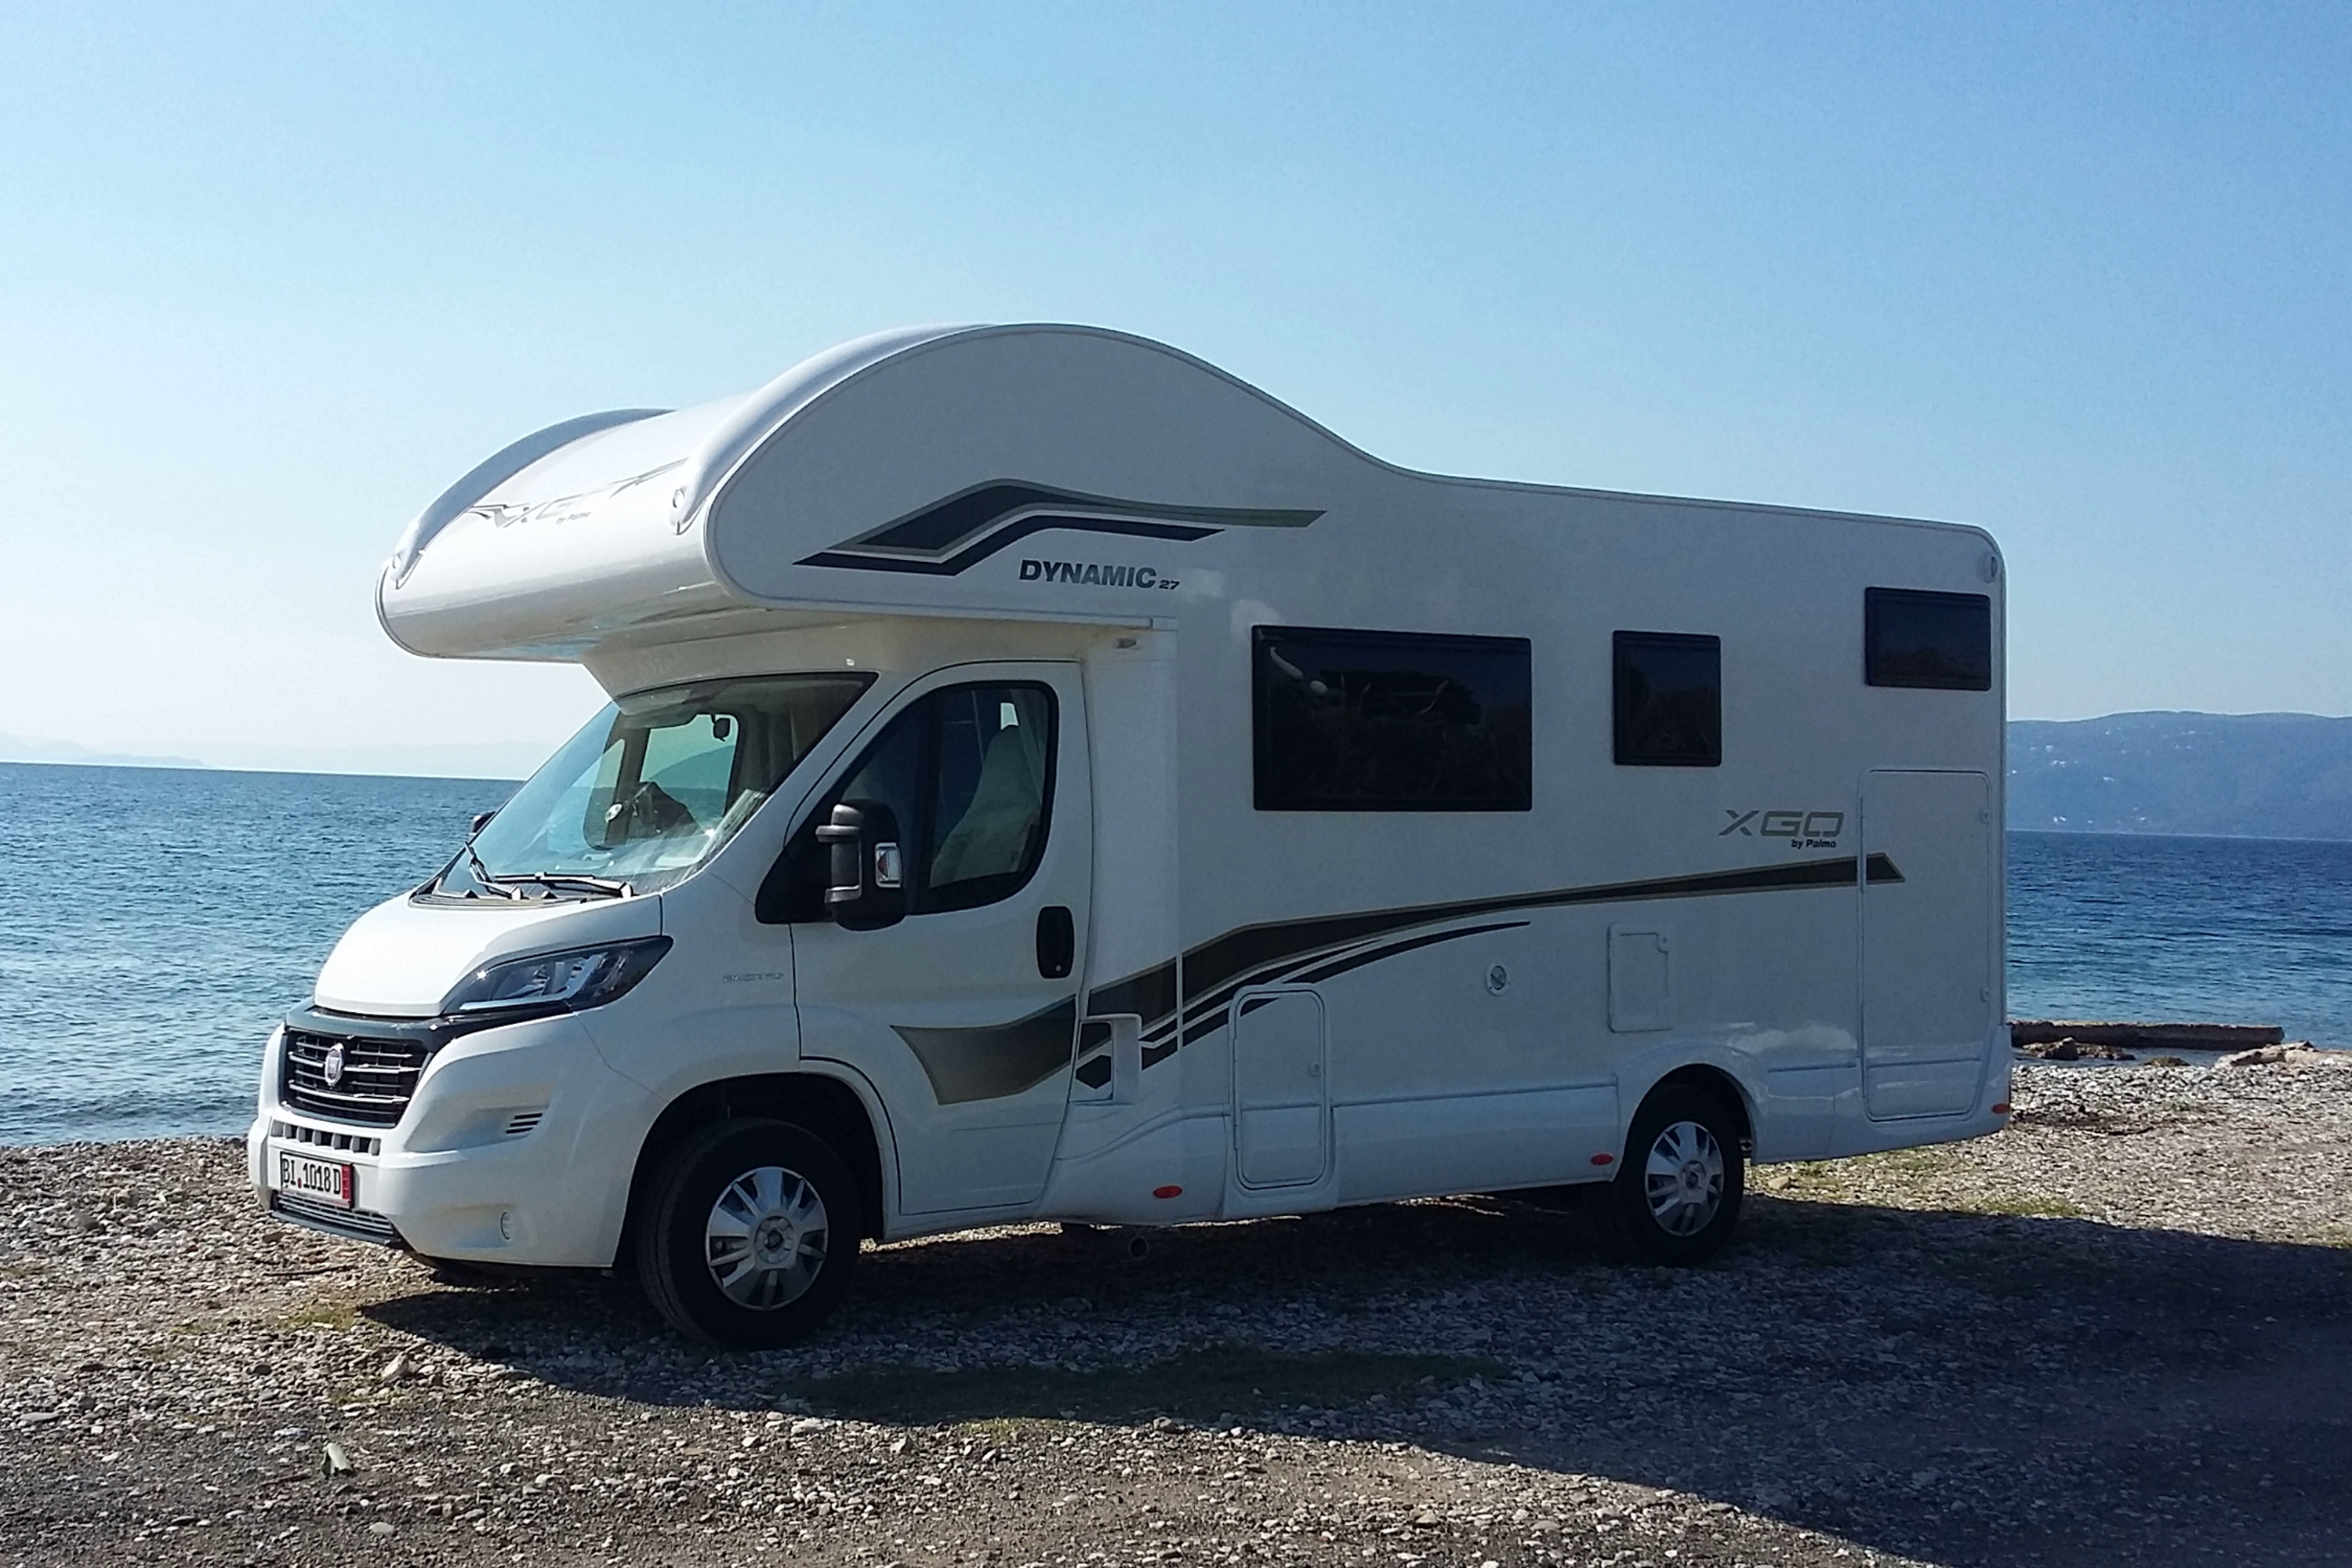 XGO-27 - 2019, spacious family camper